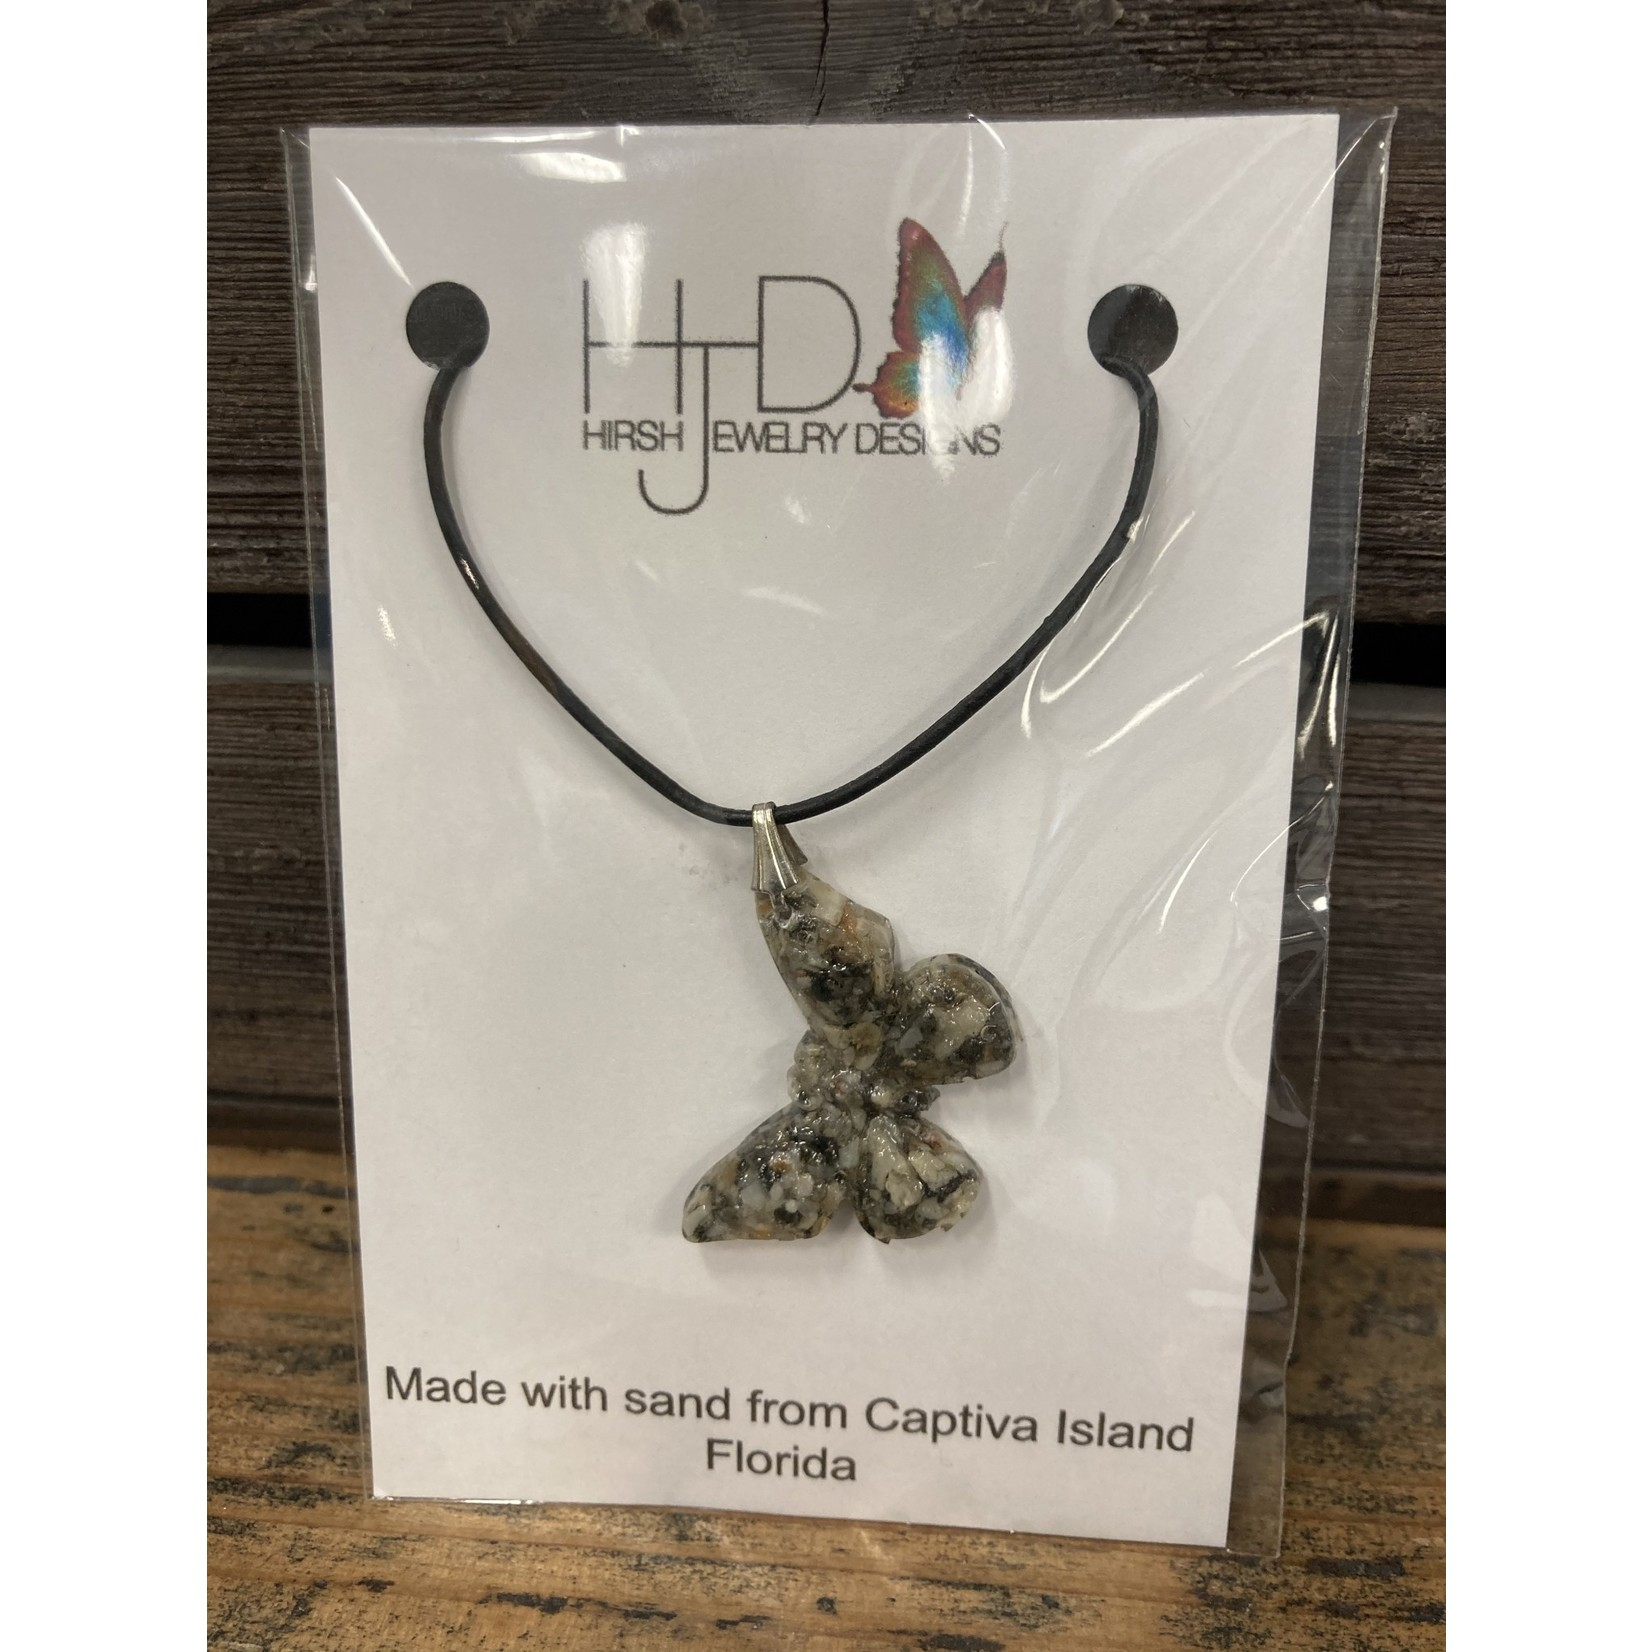 Colleen Hirsh Hirsh #63 captiva island sand butterfly necklace